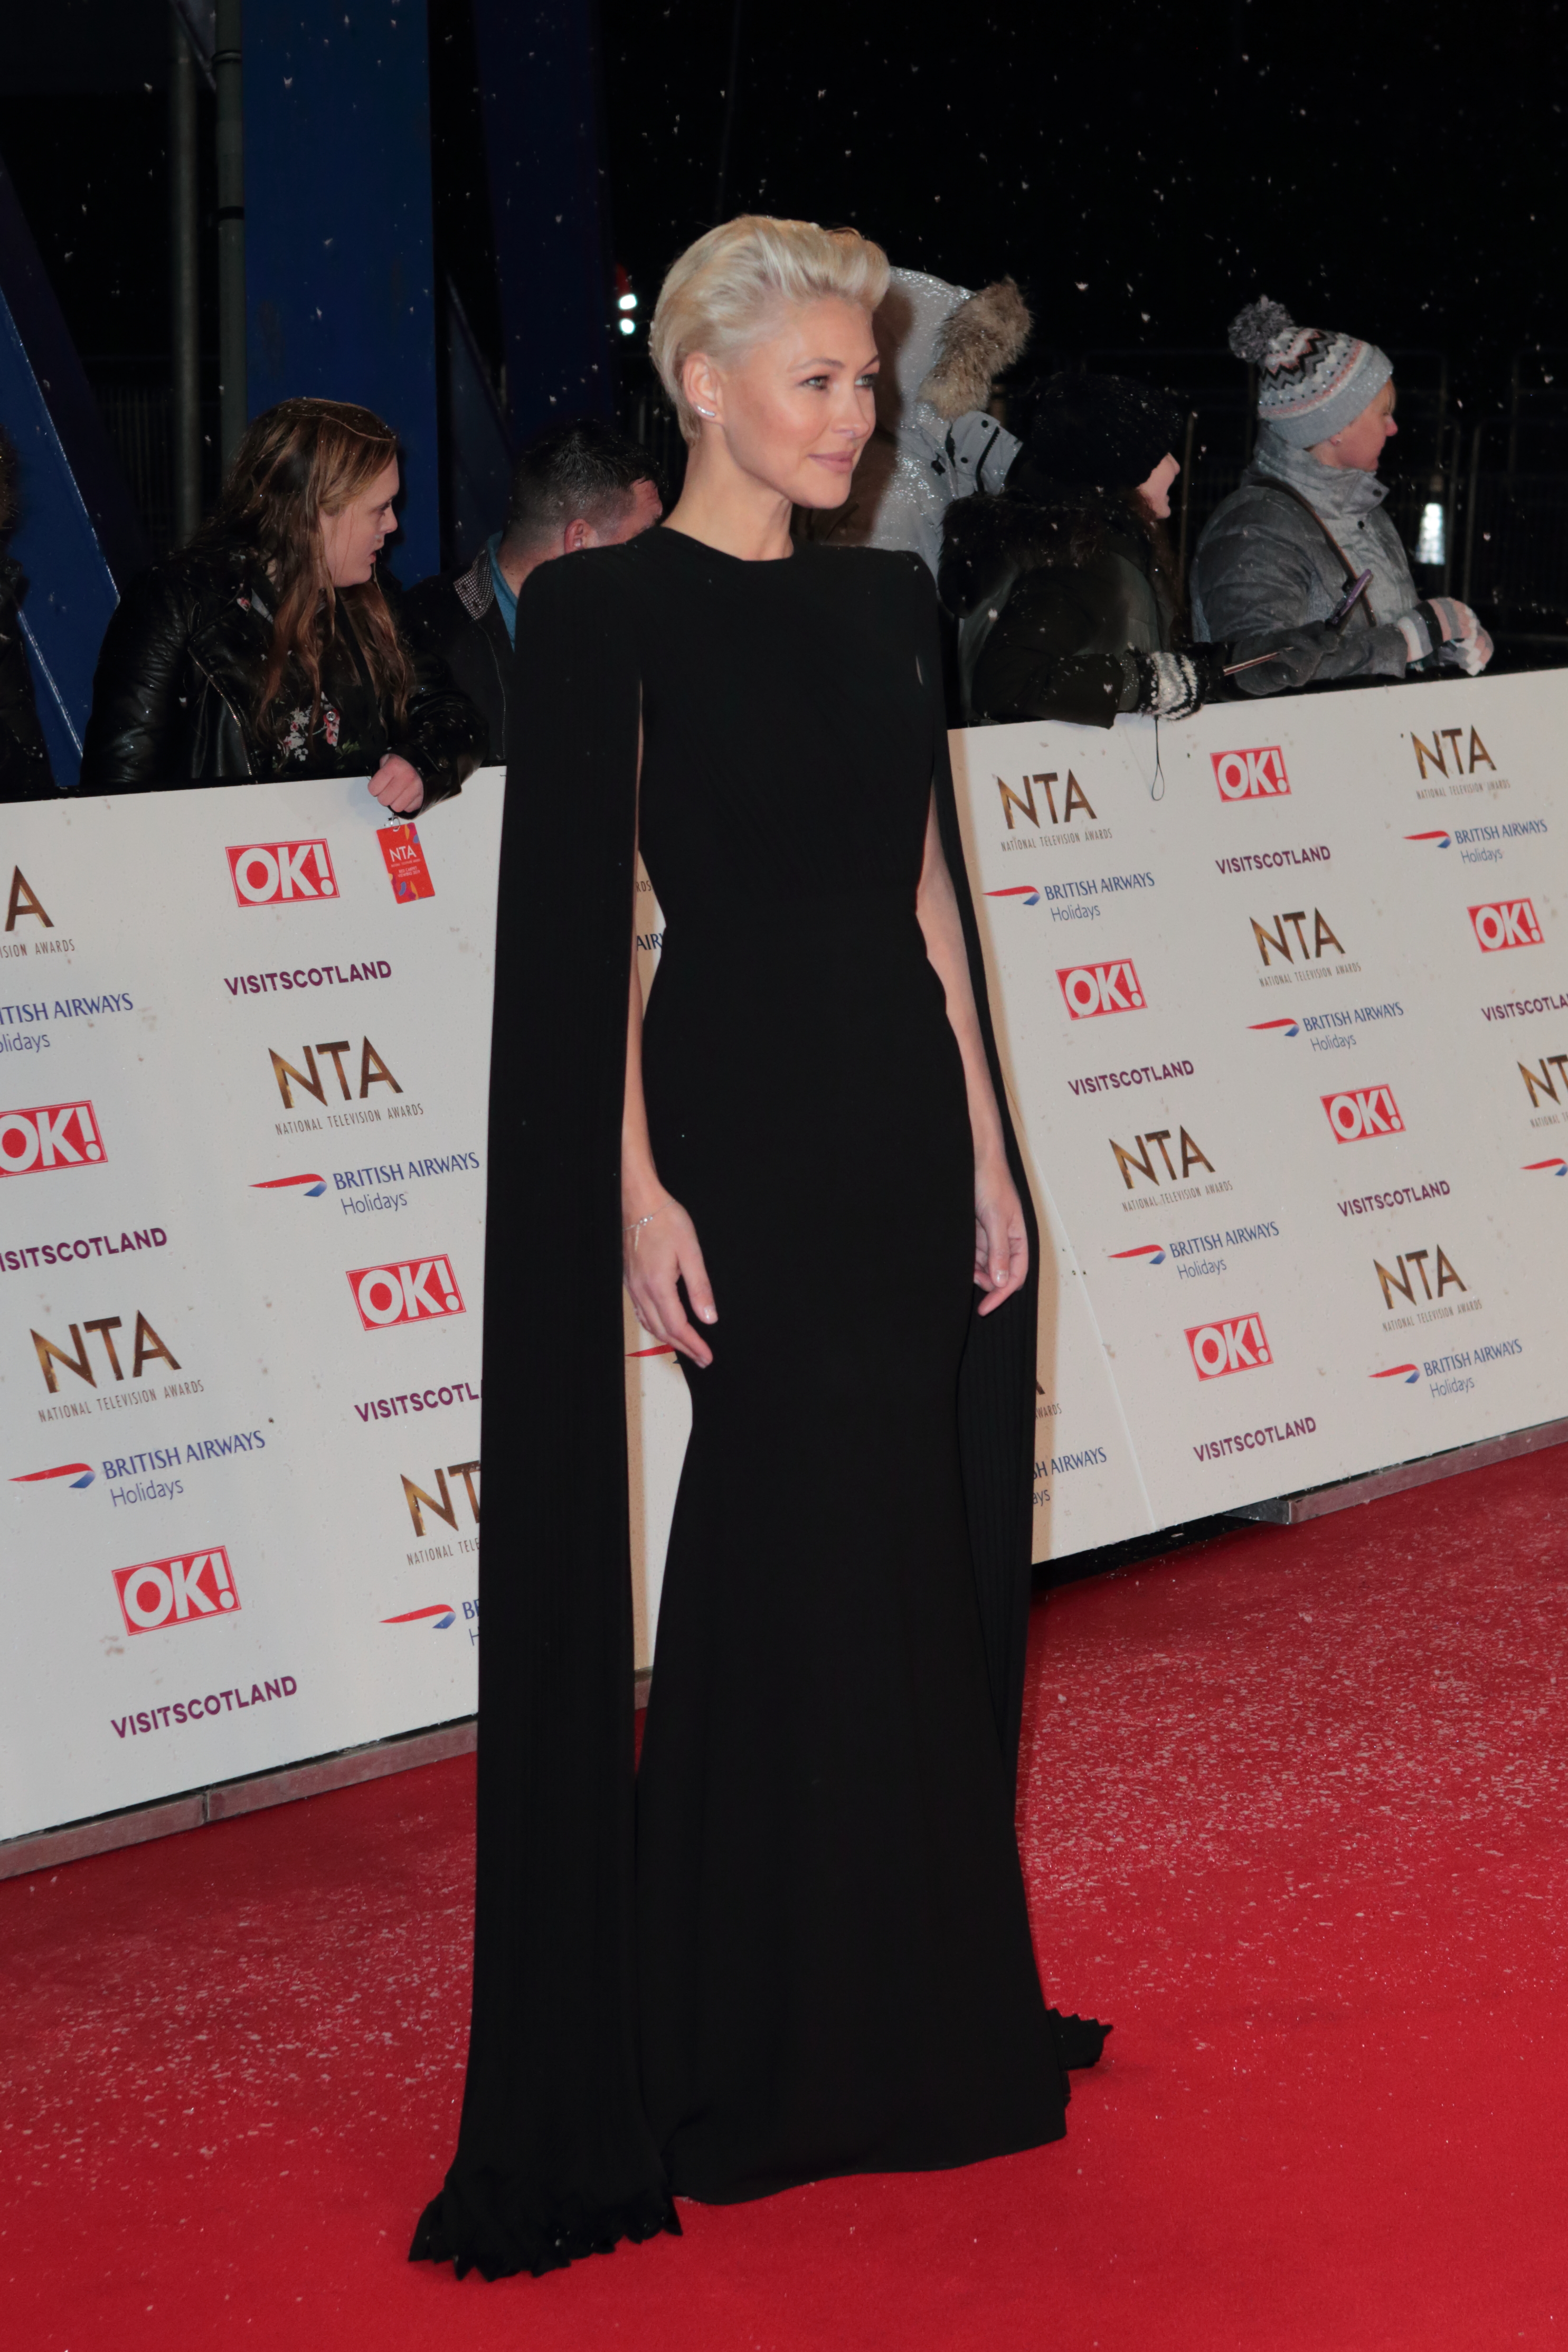 National Television Awards 2019 Red Carpet Arrivals London O2 Greenwich Pictured: Emma Willis Ref: SPL5057189 220119 NON-EXCLUSIVE Picture by: Grant Buchanan / SplashNews.com Splash News and Pictures Los Angeles: 310-821-2666 New York: 212-619-2666 London: 0207 644 7656 Milan: 02 4399 8577 photodesk@splashnews.com World Rights